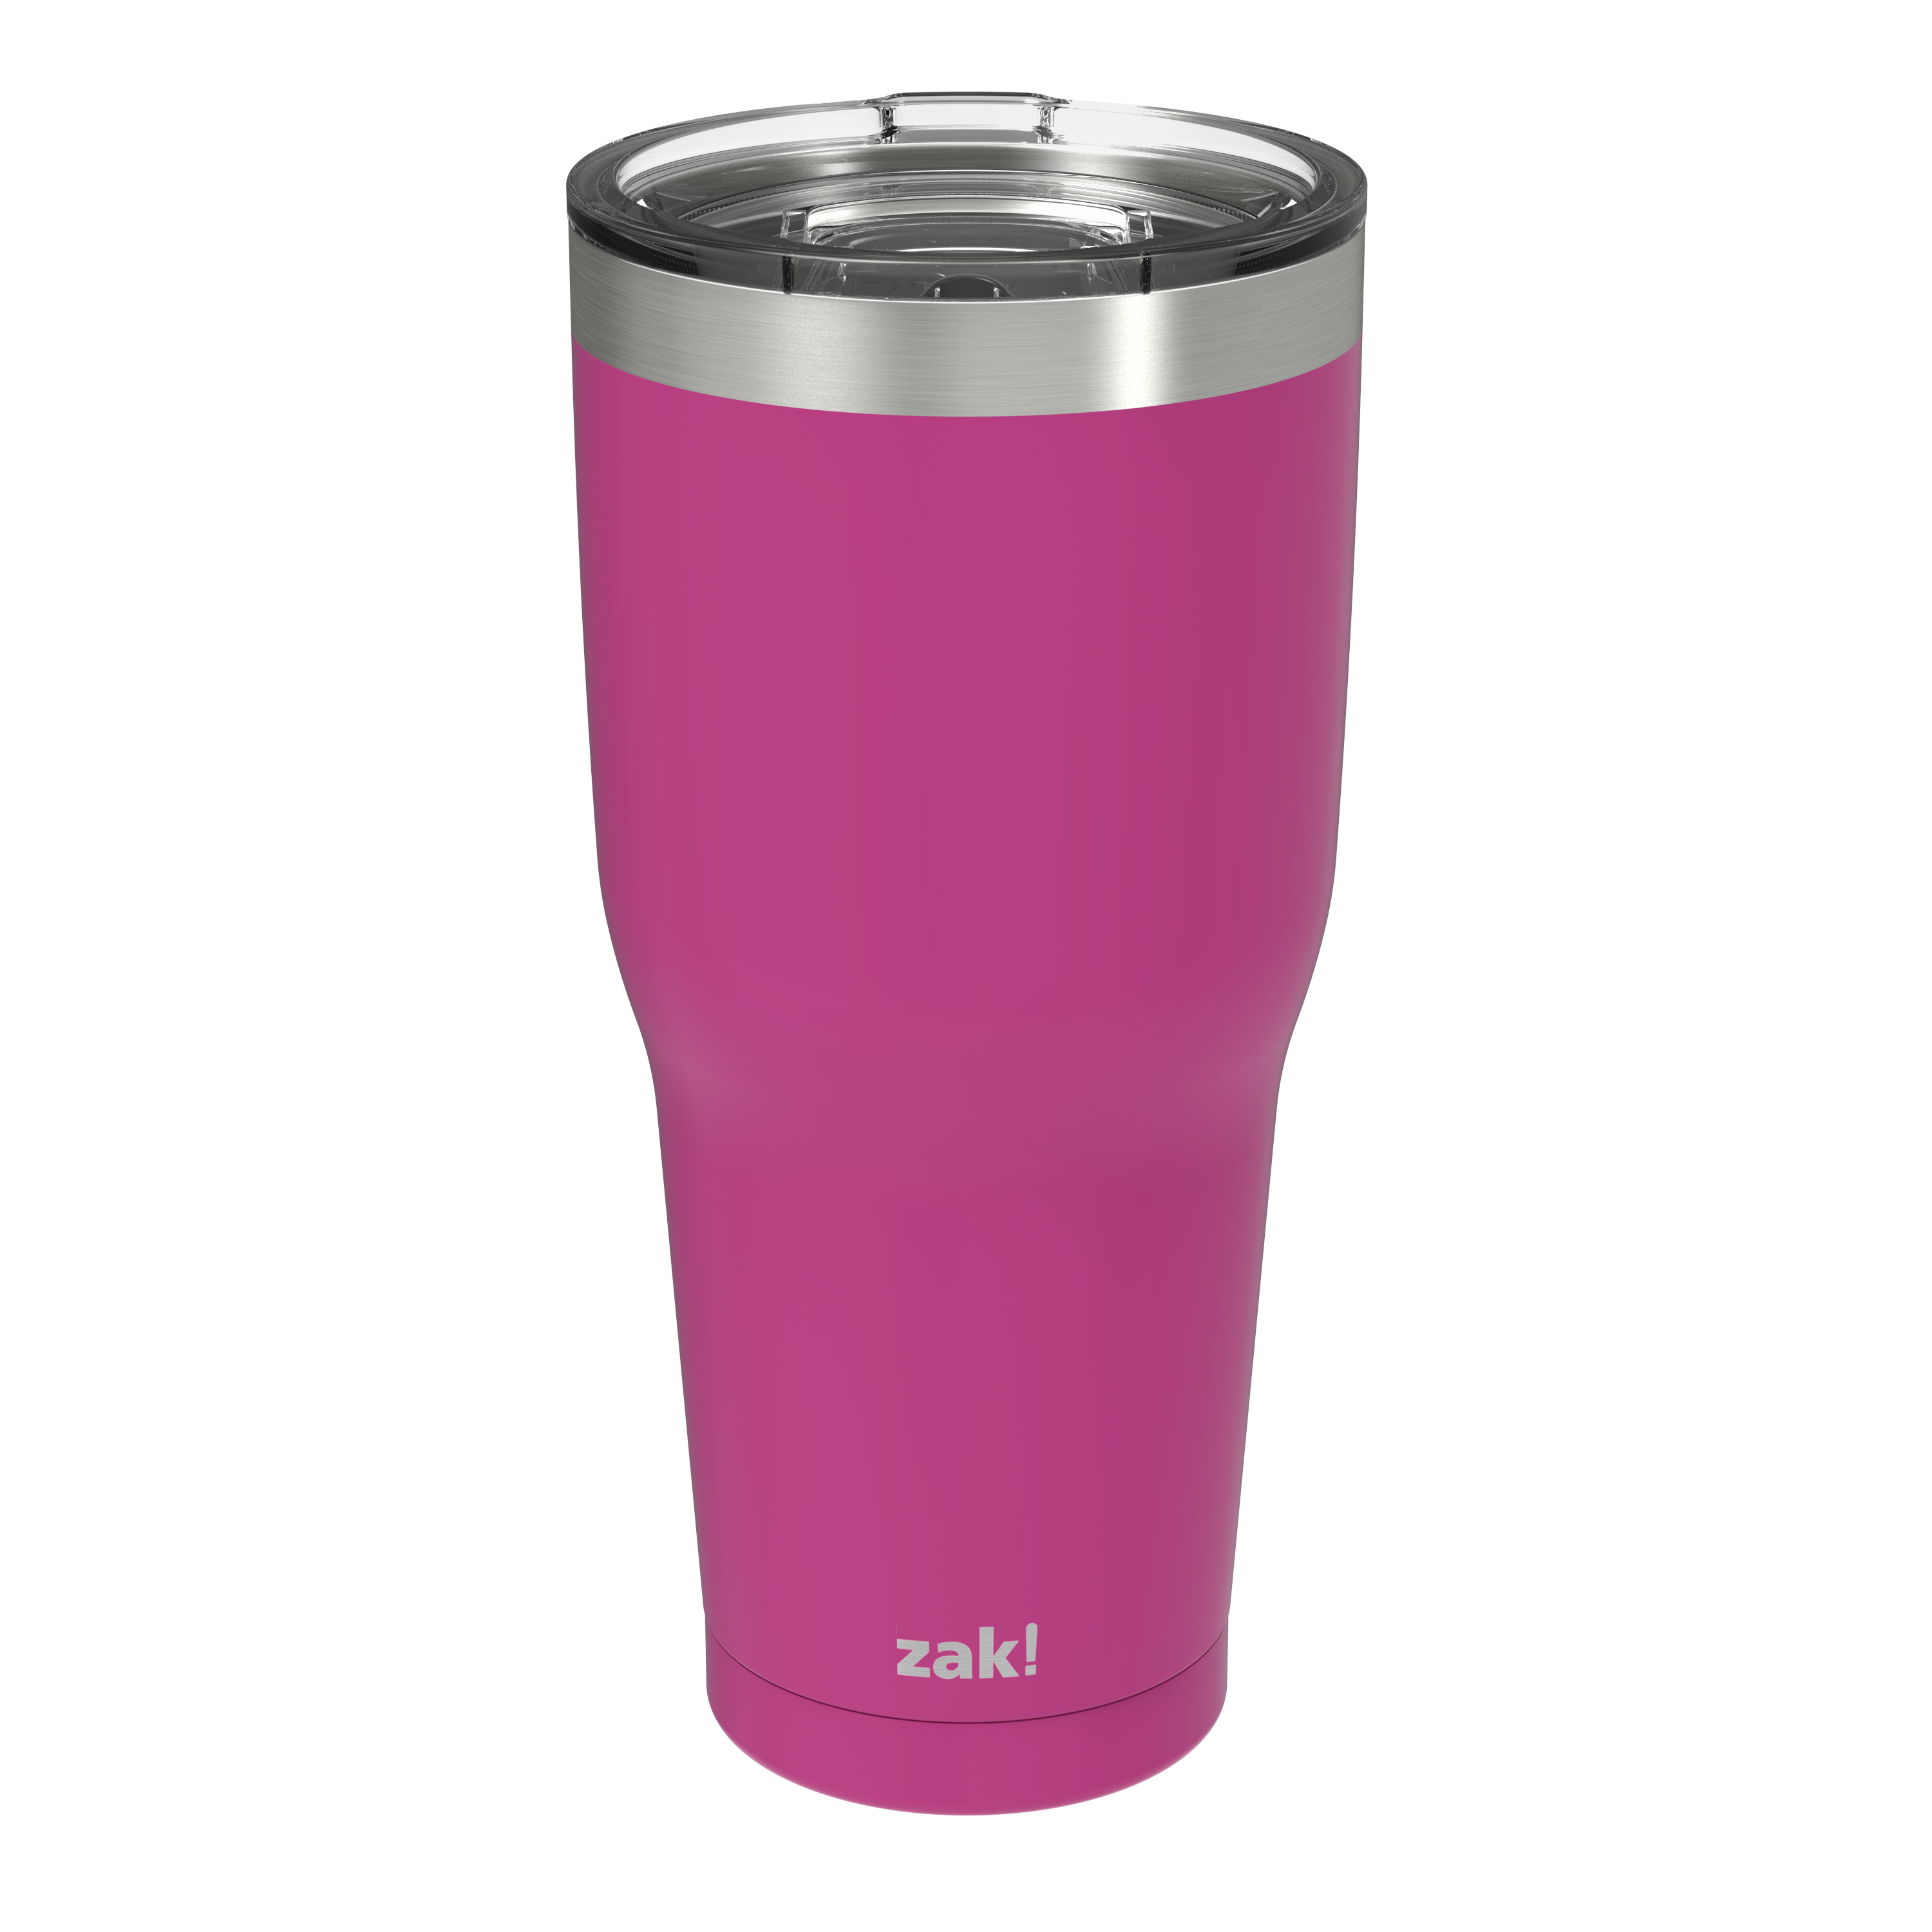 Zak Hydration 30 ounce Vacuum Insulated Stainless Steel Tumbler, Peony slideshow image 2